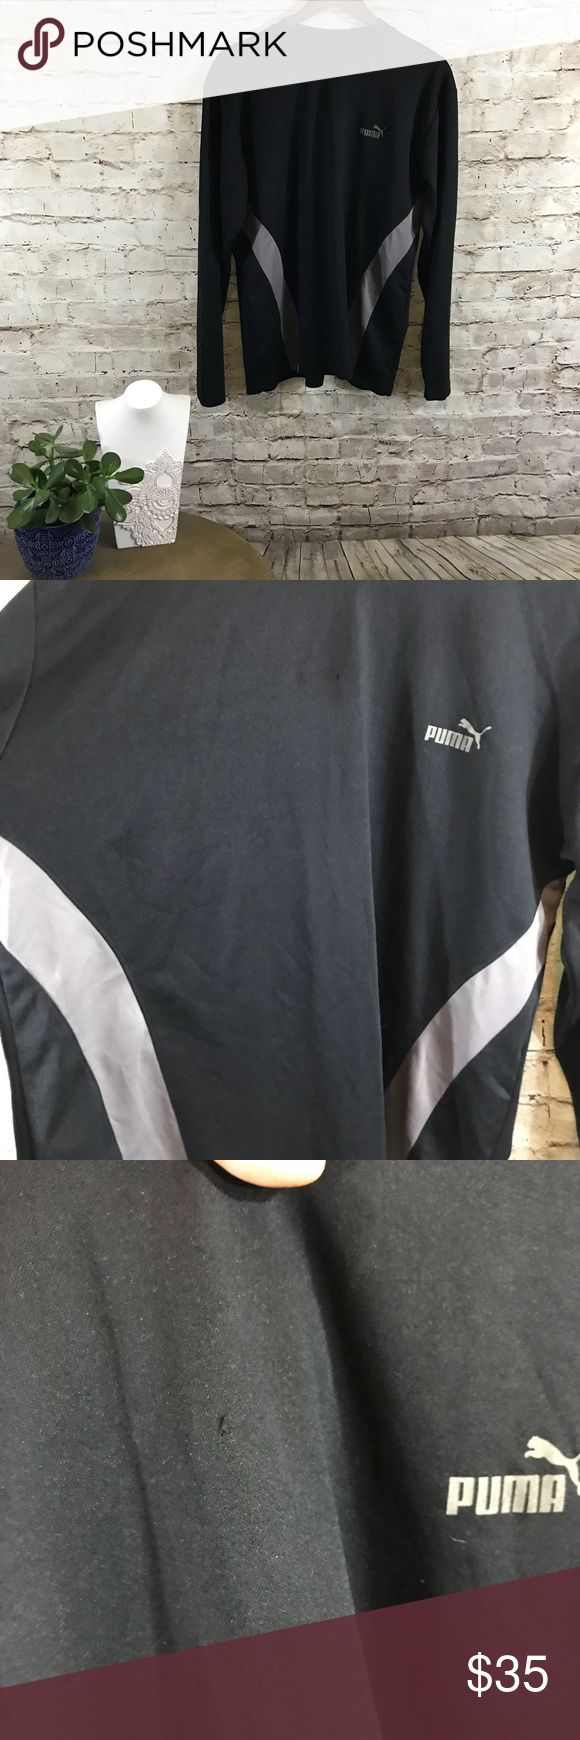 Puma long sleeve activewear tee In excellent condition. Black and grey long sleeve undershirt . Size Large Puma Shirts Tees - Long Sleeve